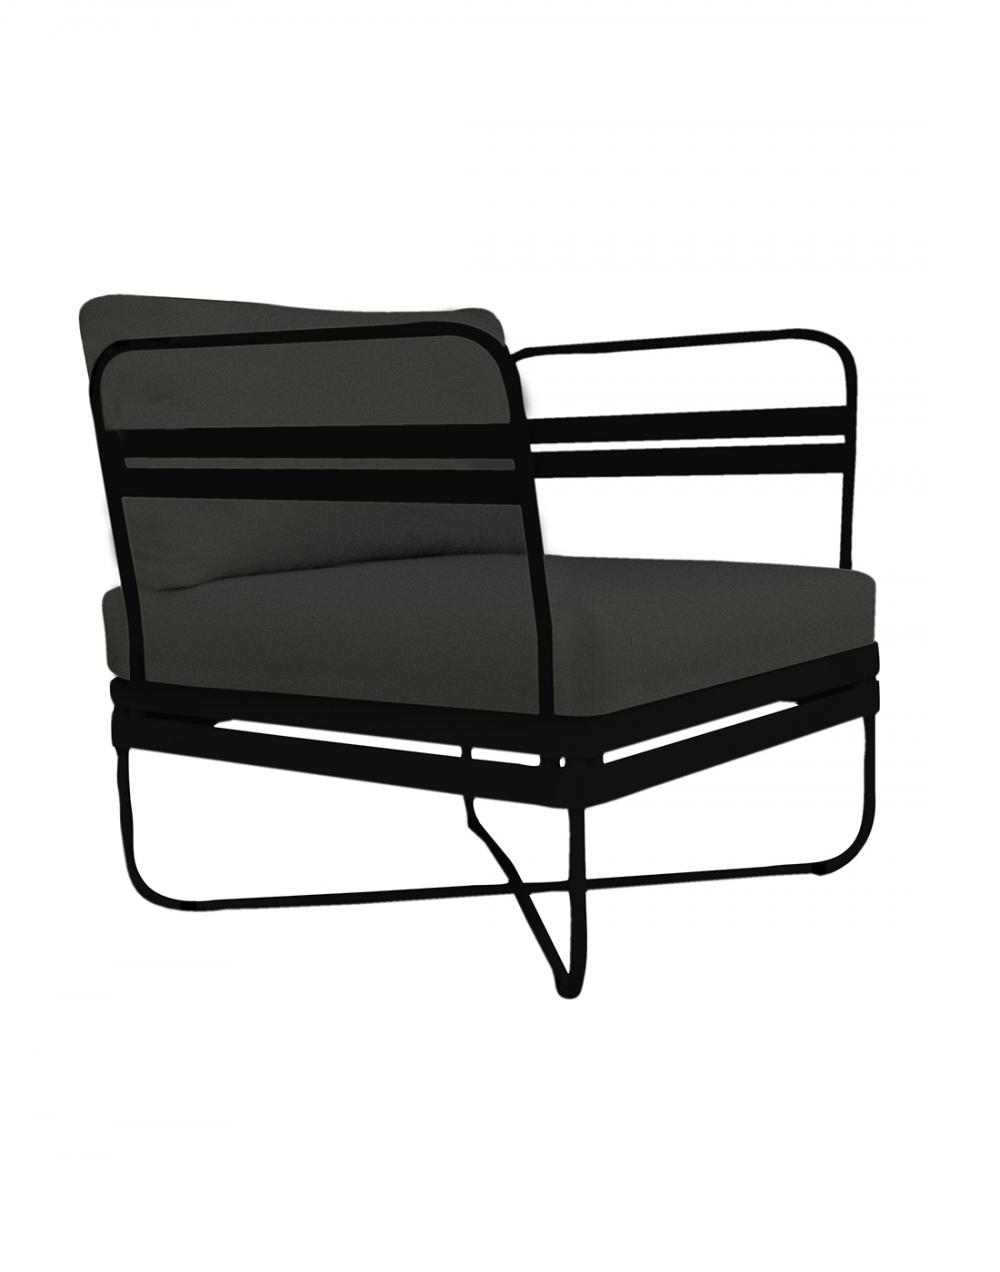 Bris outdoor chair